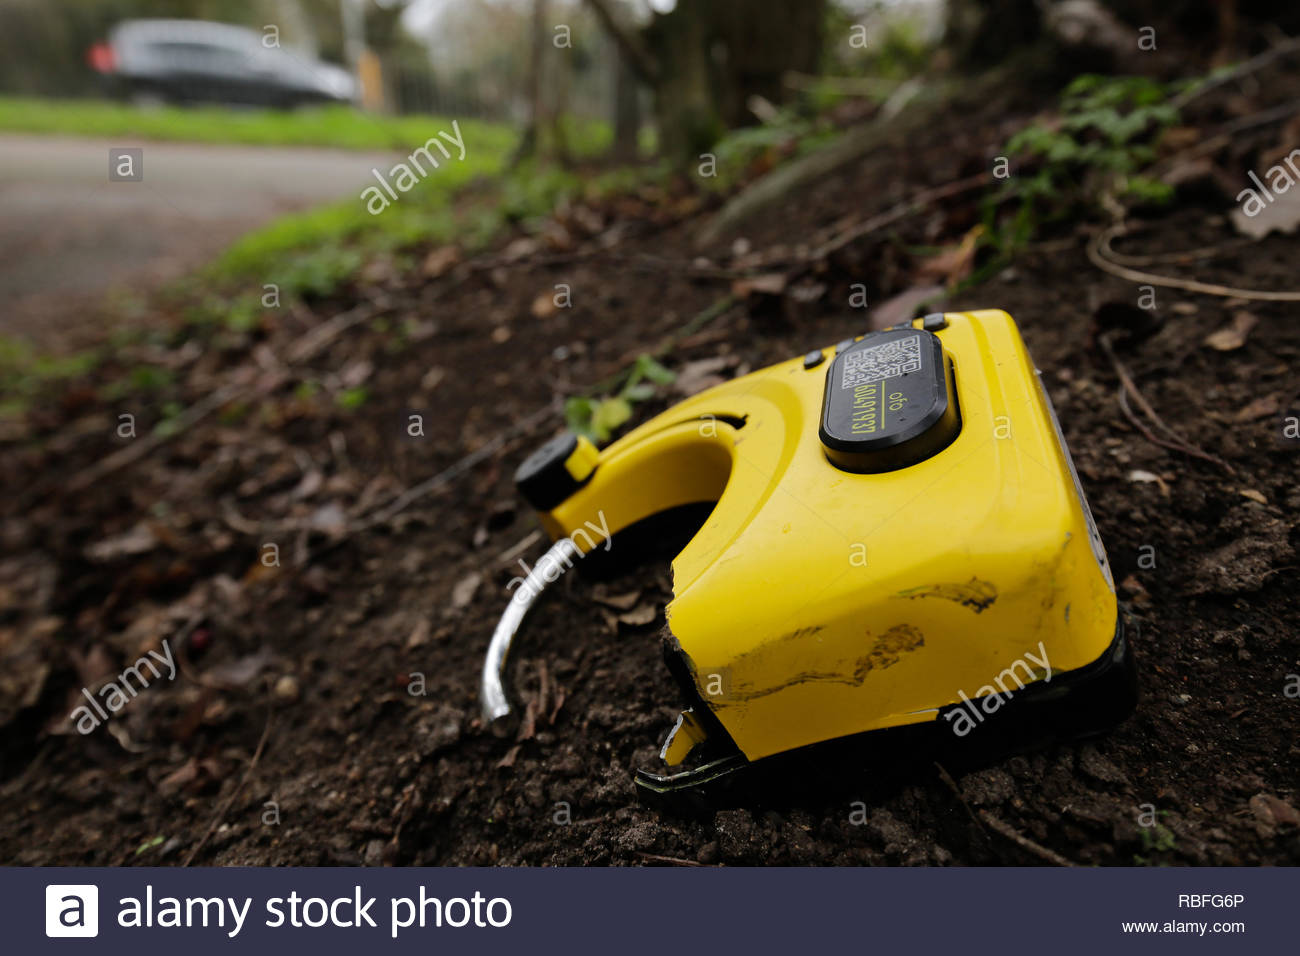 Cambridge, UK. 10th Jan, 2019. A vandalised ofo bike's tracker broken off and left on the side of Barnwell road, Cambridge, adding to the multitude of bikes now being taken advantage of in the city. Credit: Jonathan Mbu/Alamy Live News. - Stock Image